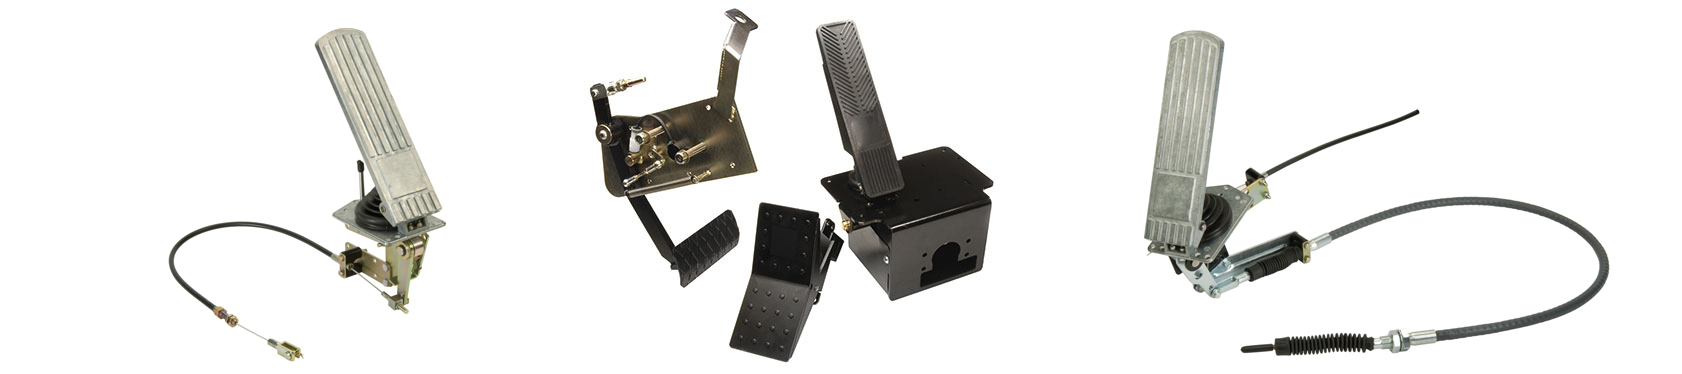 Cablecraft Foot Controls Pedals